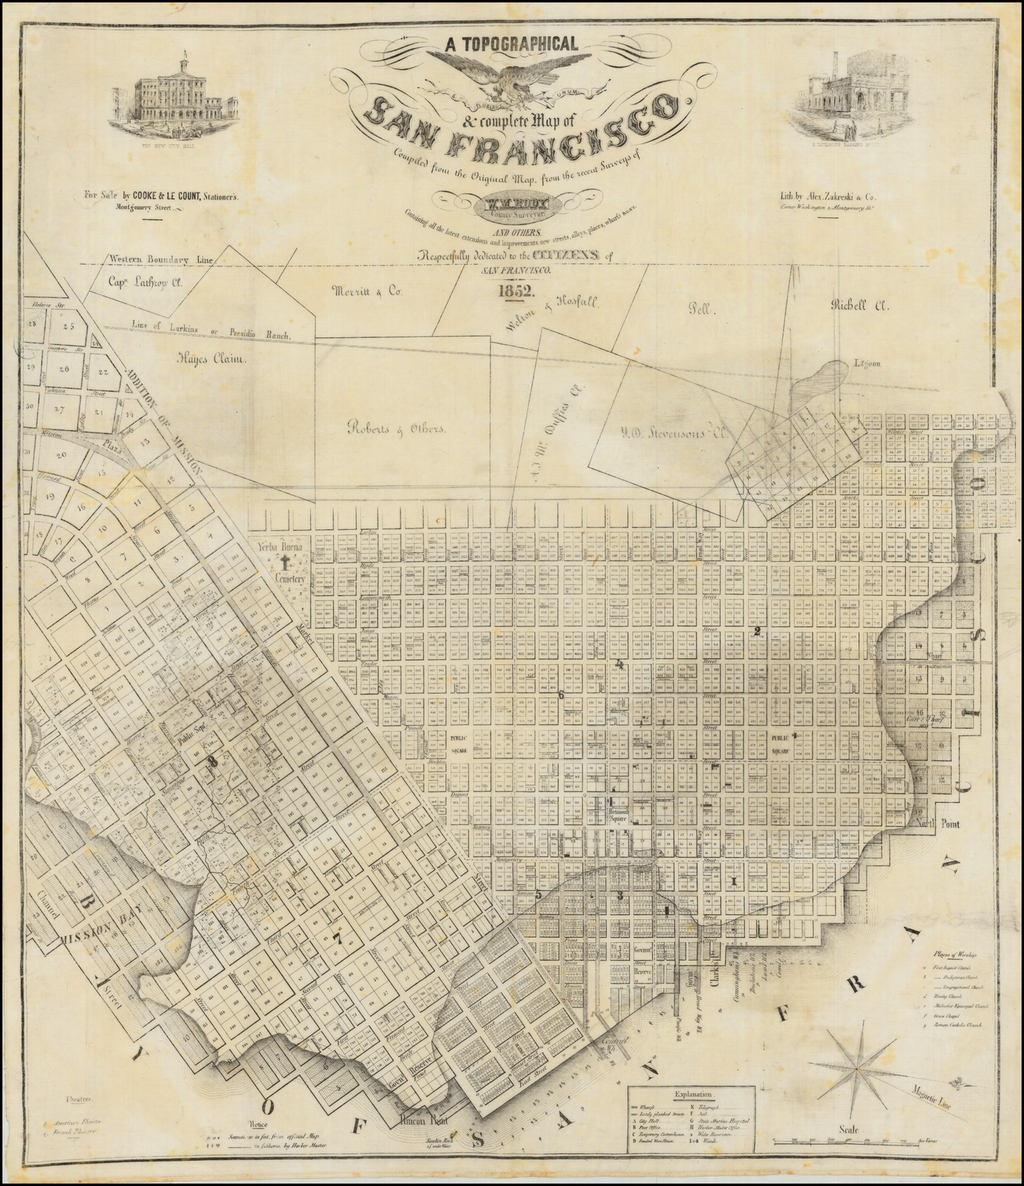 A Topographical & complete Map of San Francisco.  Compiled from the Original Map, from the recent Surveys of W.M. Eddy County Surveyor and others.  Containing all the latest extensions and improvements, new streets, alleys, places, wharfs &c.&c.  Respectfully dedicated to the Citizens of San Francisco.  1852. By William Eddy  &  Alexander Zakreski